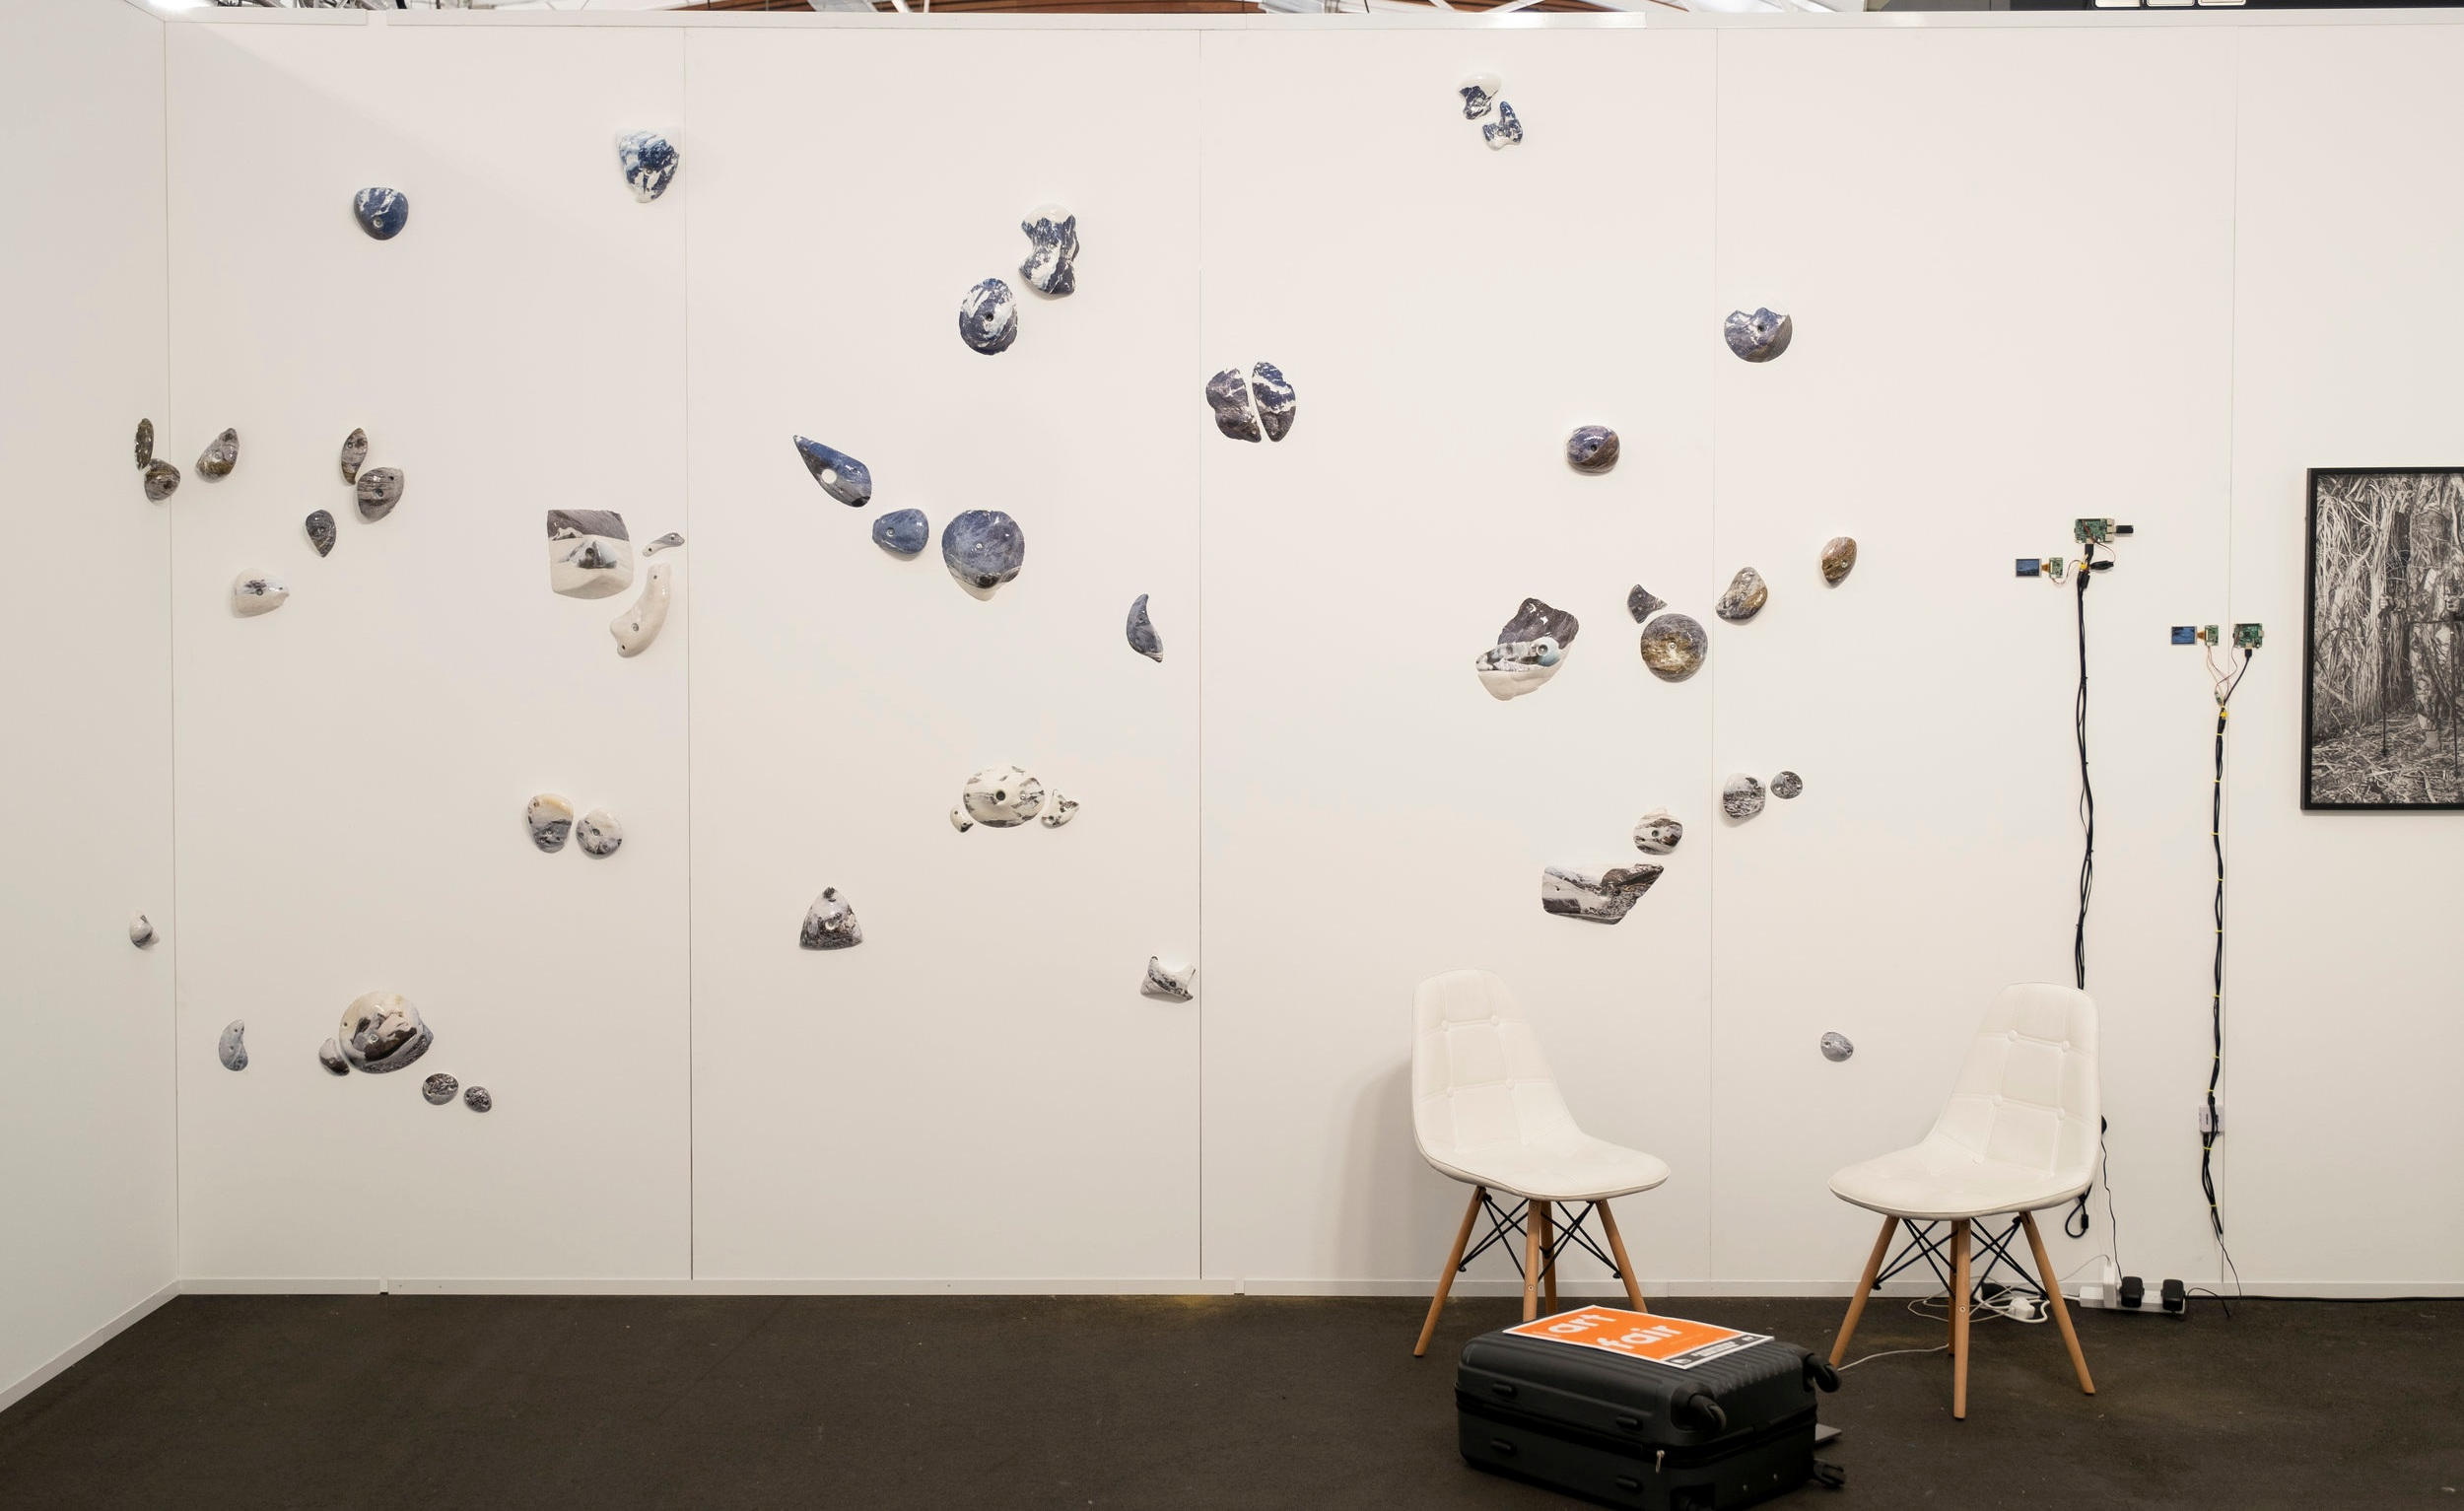 Installation view Michael Bugelli Gallery, Auckland Art Fair. Kai Wasikowski artworks Left-Right:  Climb, grip, hold #3 , 2019, hydrographic prints on rock climbing holds, dimensions variable.  Streaming #4 , 2017, single channel video (5m 18s loop), LCD display, RaspberryPi, HDMI and component cables, 9 x 4 cm display, dimensions variable.  10 January 2017 #3 , 2017, single channel video (4m 29s loop), LCD display, RaspberryPi, HDMI and component cables, 7 x 3 cm display, dimensions variable.  Garden #2 , 2019, inkjet print on cotton rag, 77 x 60 cm. Image: Josef Scott.